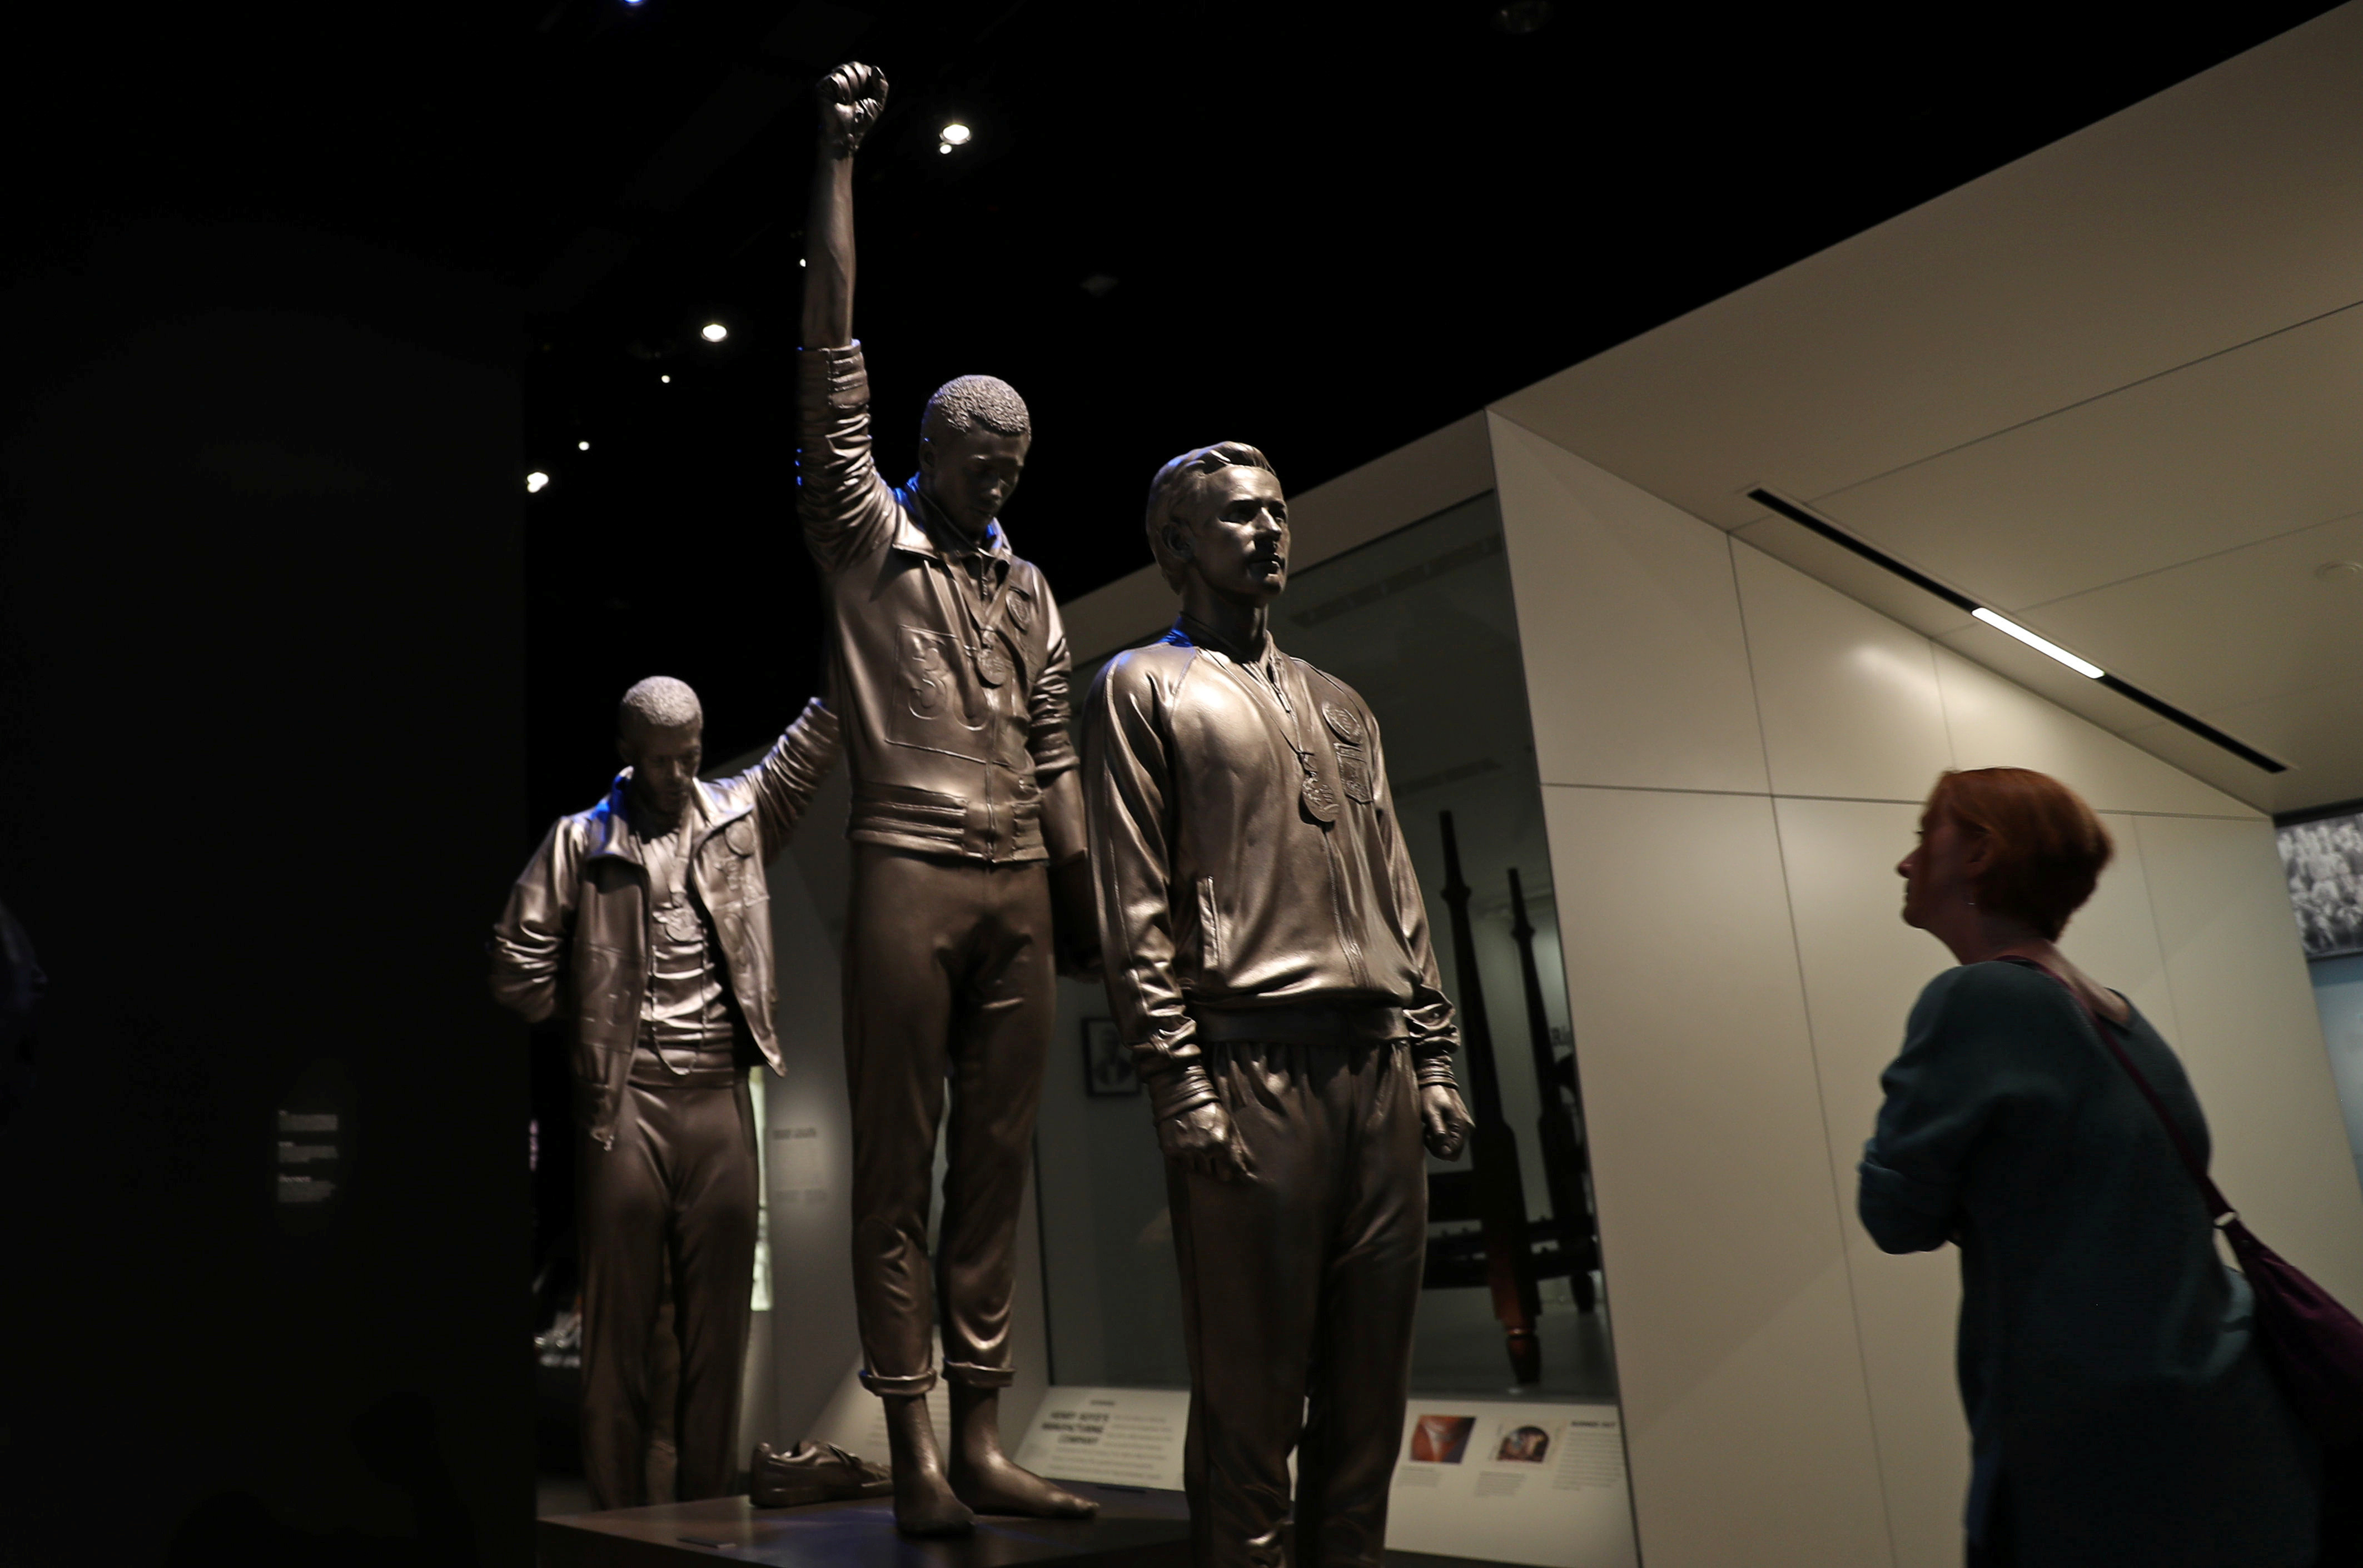 A visitor is seen at the National Museum of African American History and Culture in Washington, U.S., October 25, 2019. REUTERS/Siphiwe Sibeko - RC14287D1230